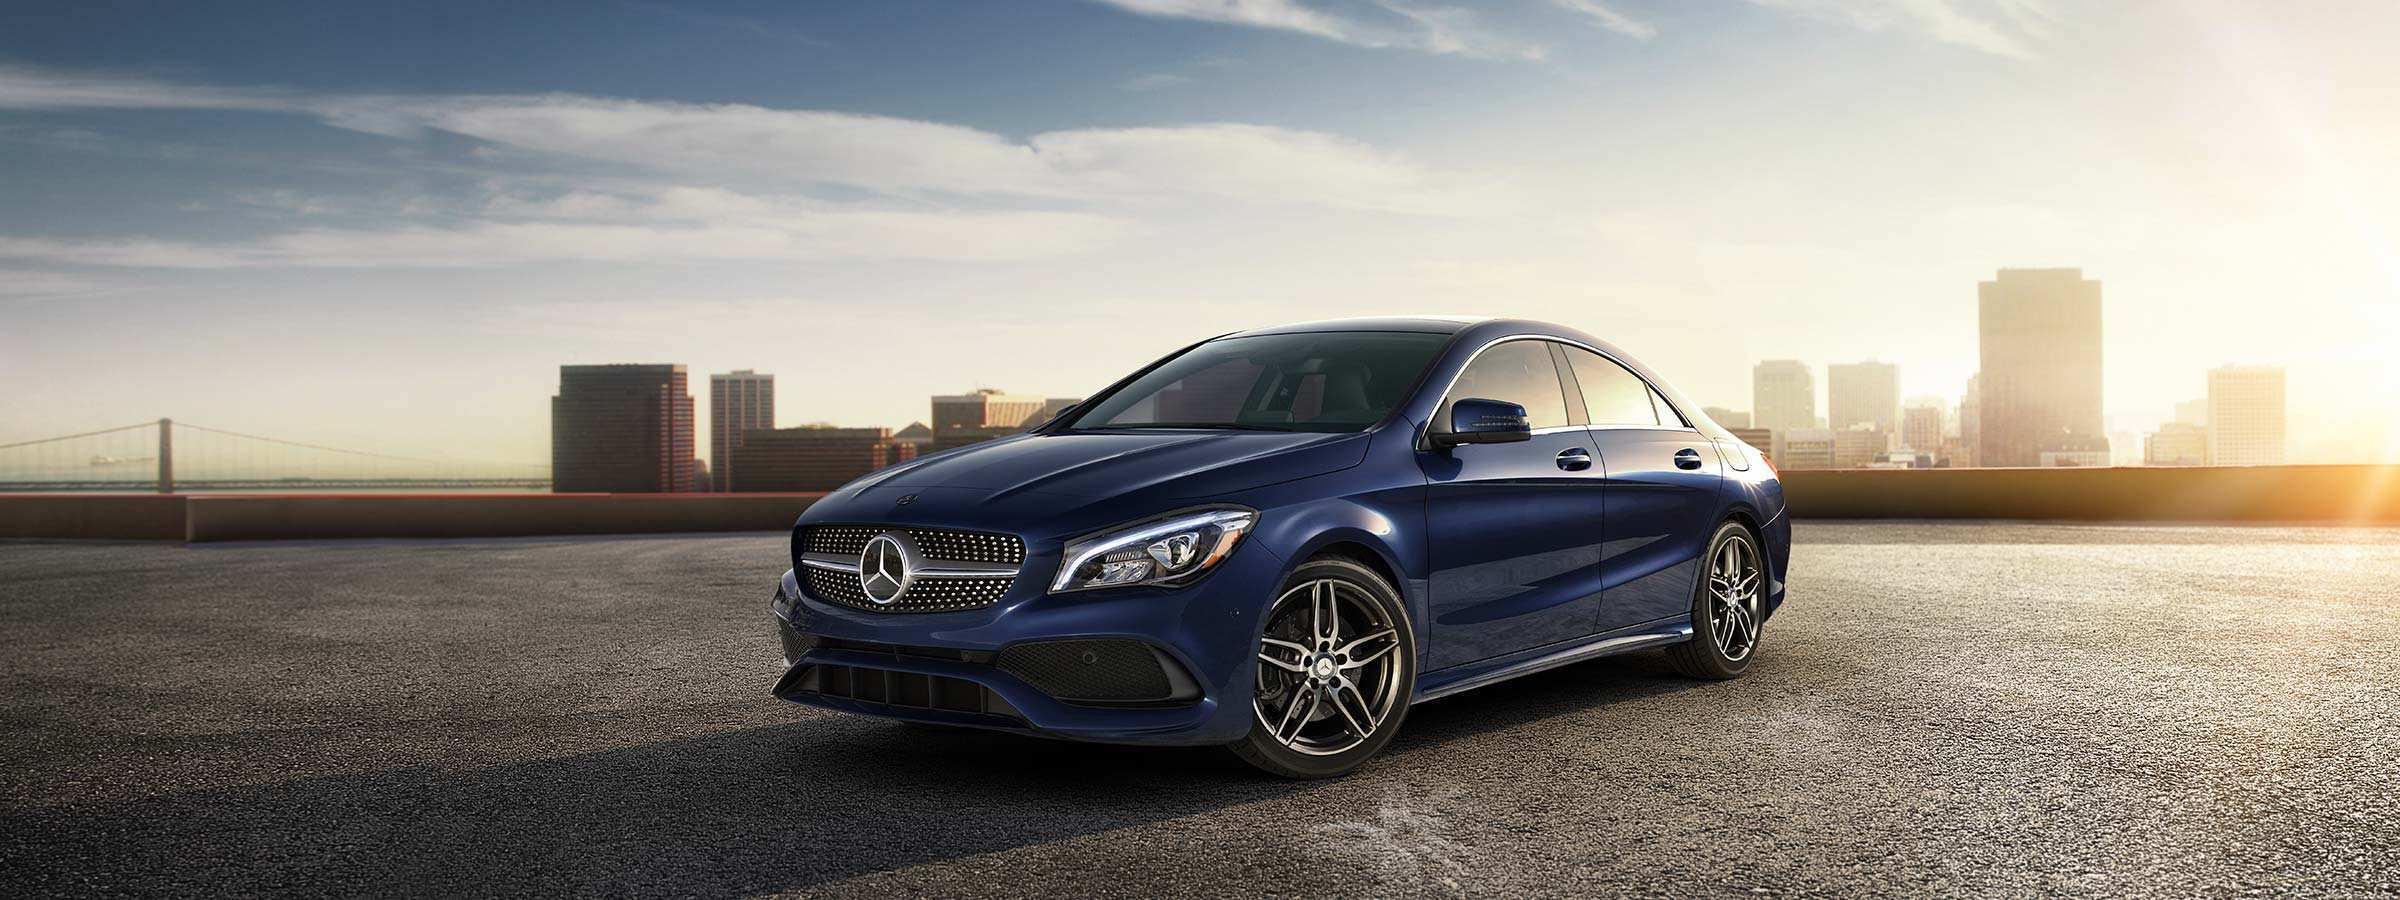 35 Best Mercedes Cla 2019 Release Date Model